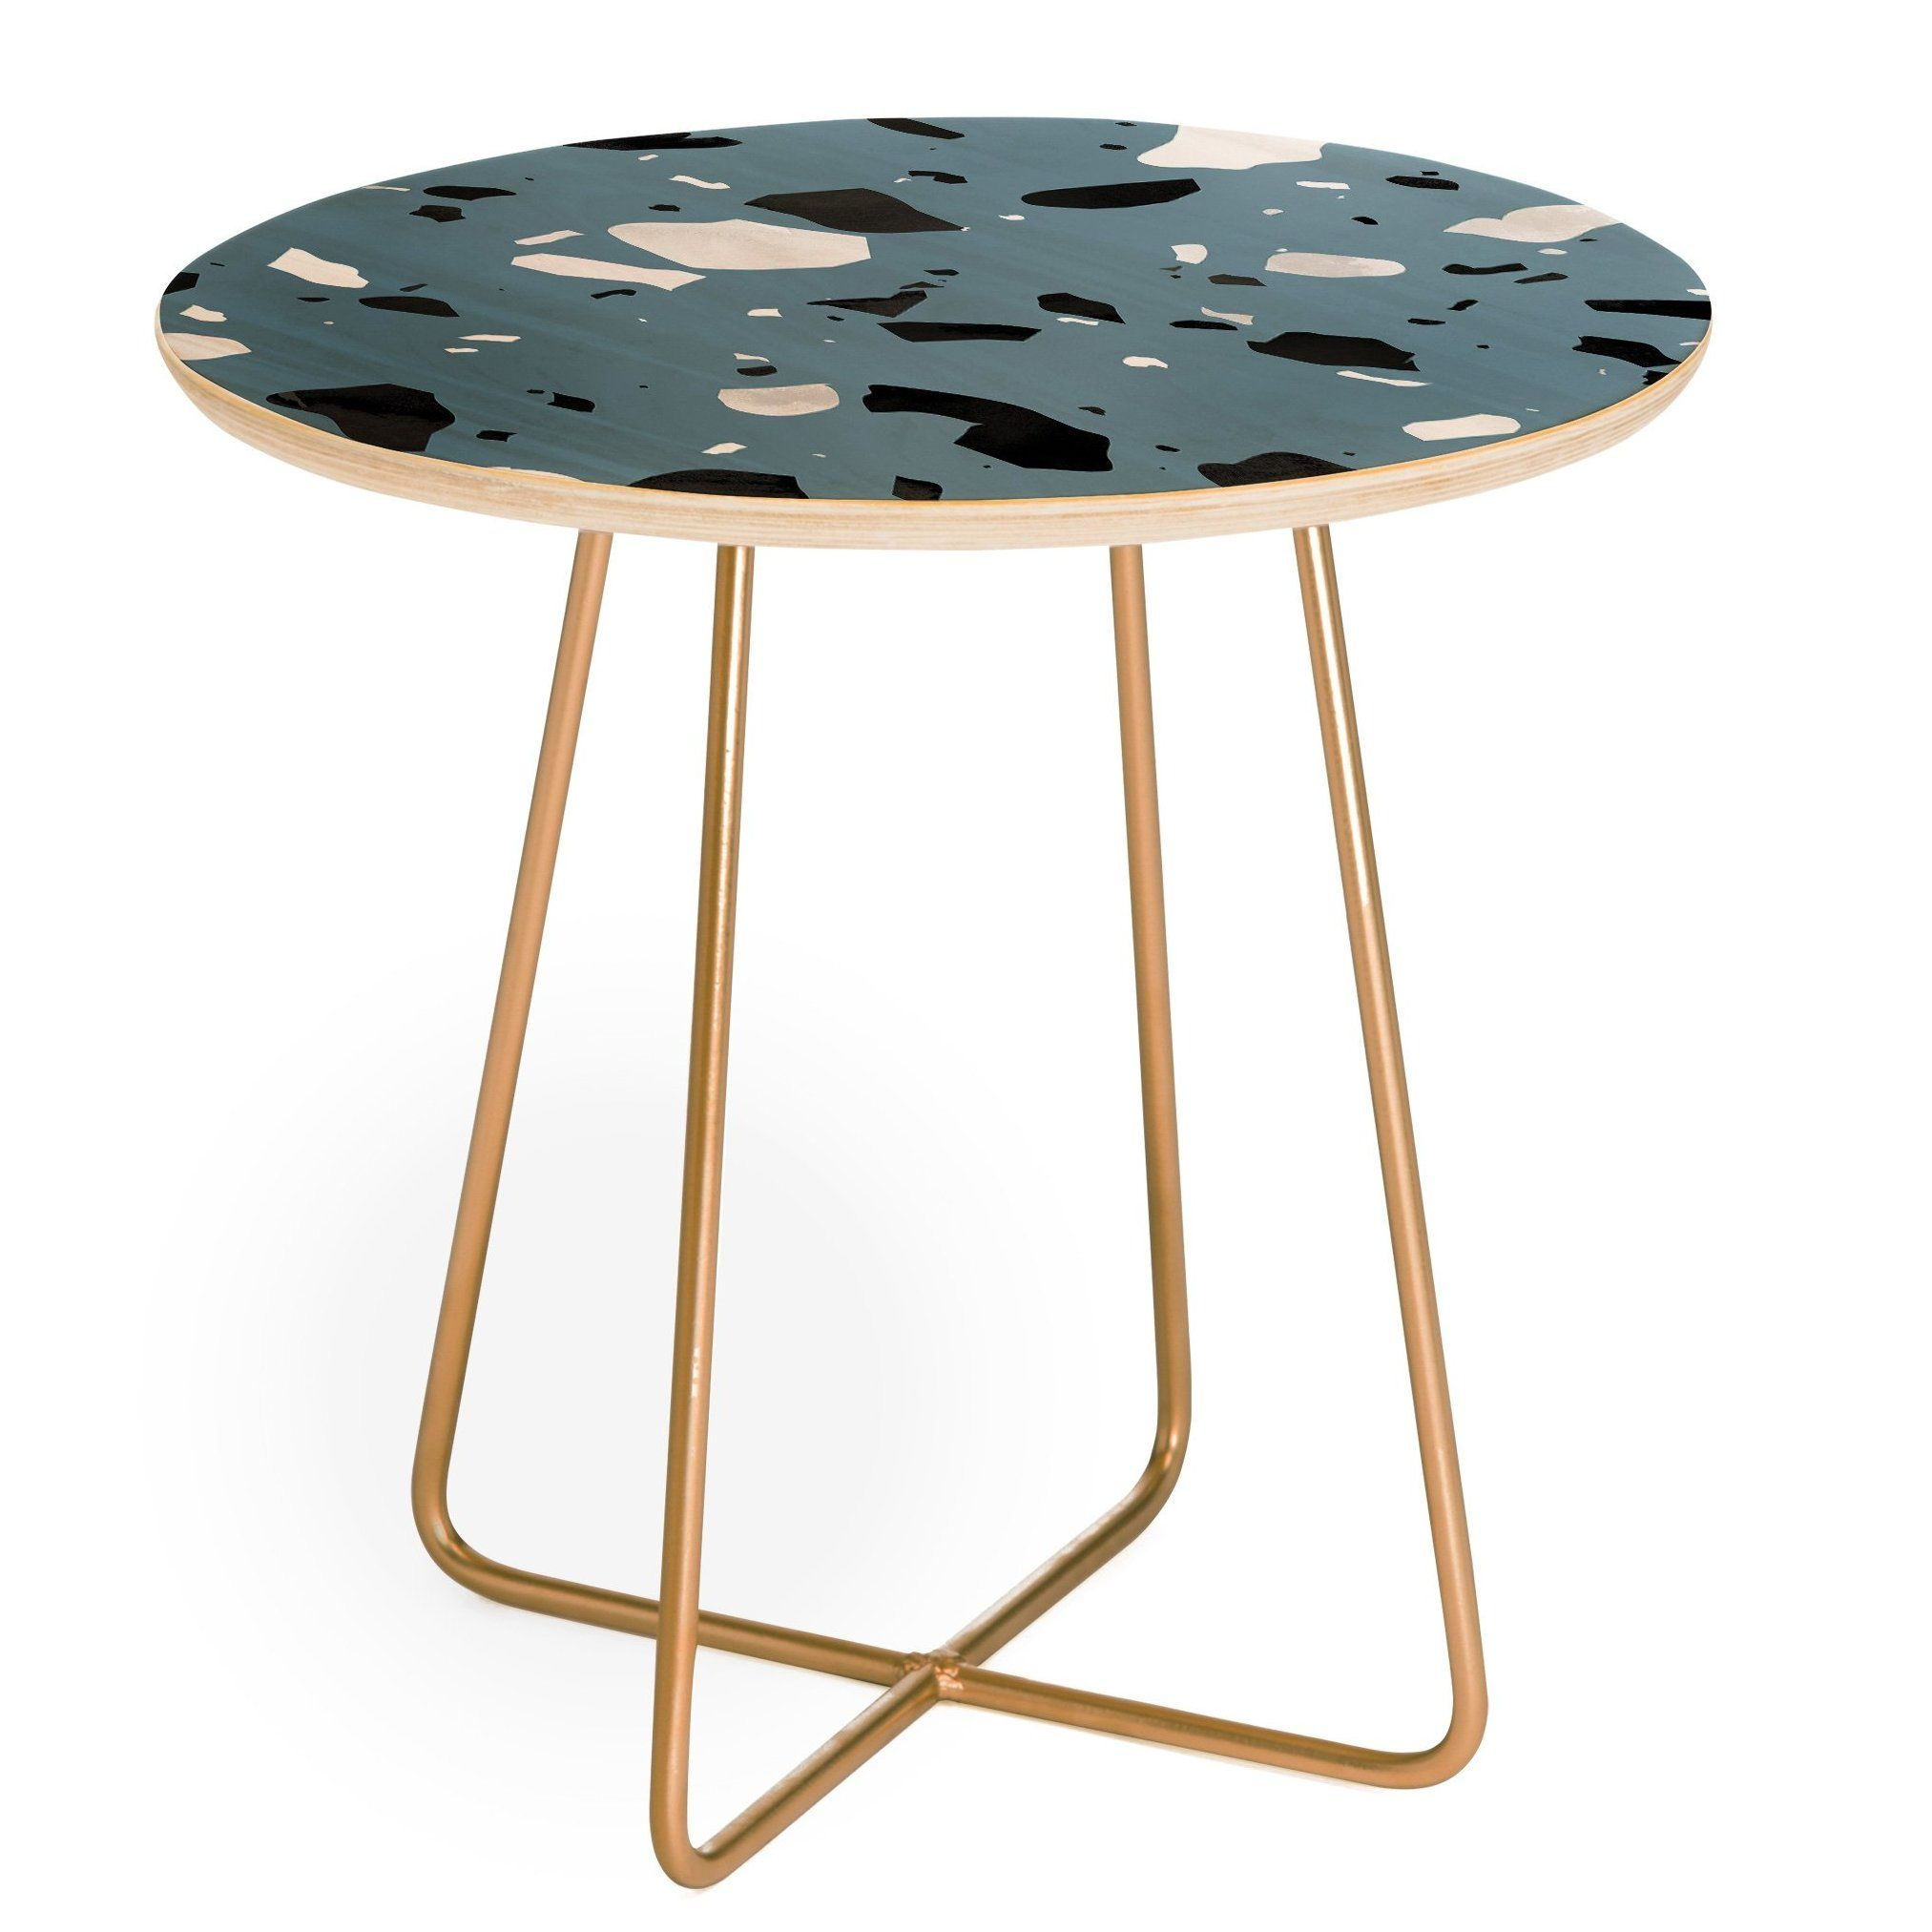 East Urban Home Mareike Boehmer Terrazzo Round End Table Wayfair End Tables Contemporary End Tables Table